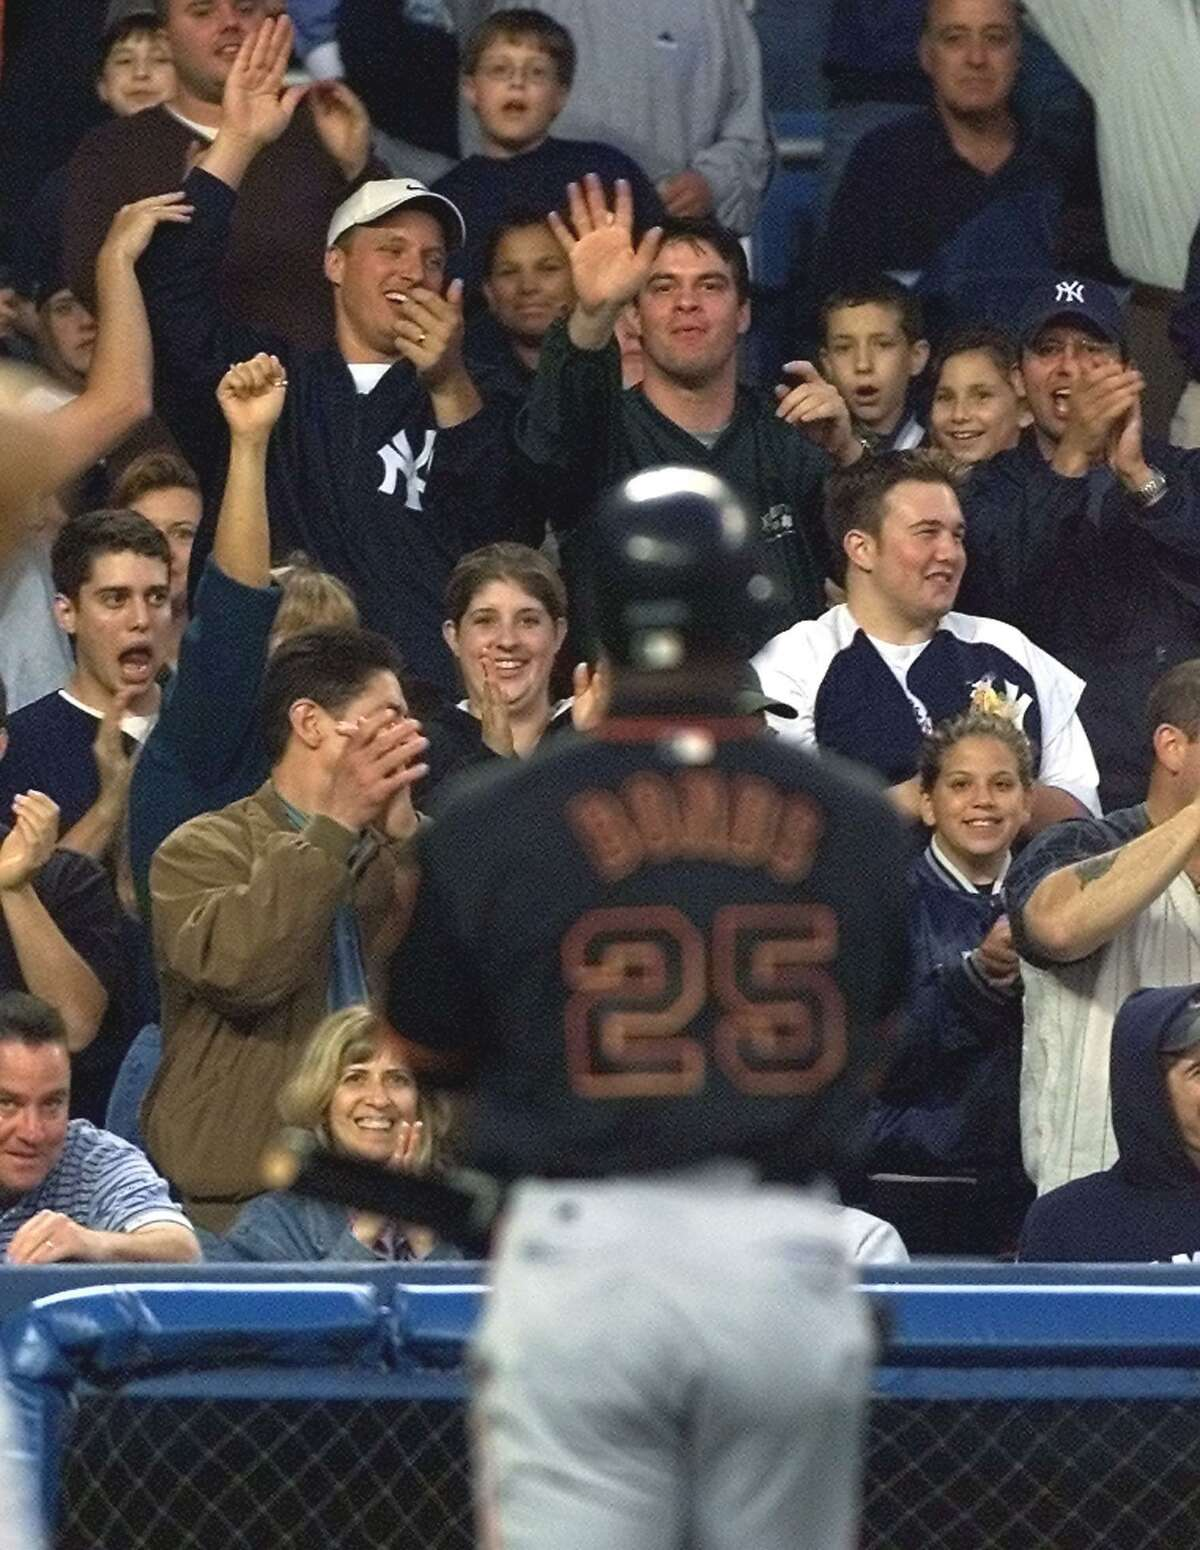 New York Yankee fans heckle San Francisco Giants' left fielder Barry Bonds as he walks back to the dugout after striking out in the third inning 07 June 2002 at Yankee Stadium in the Bronx, NY.